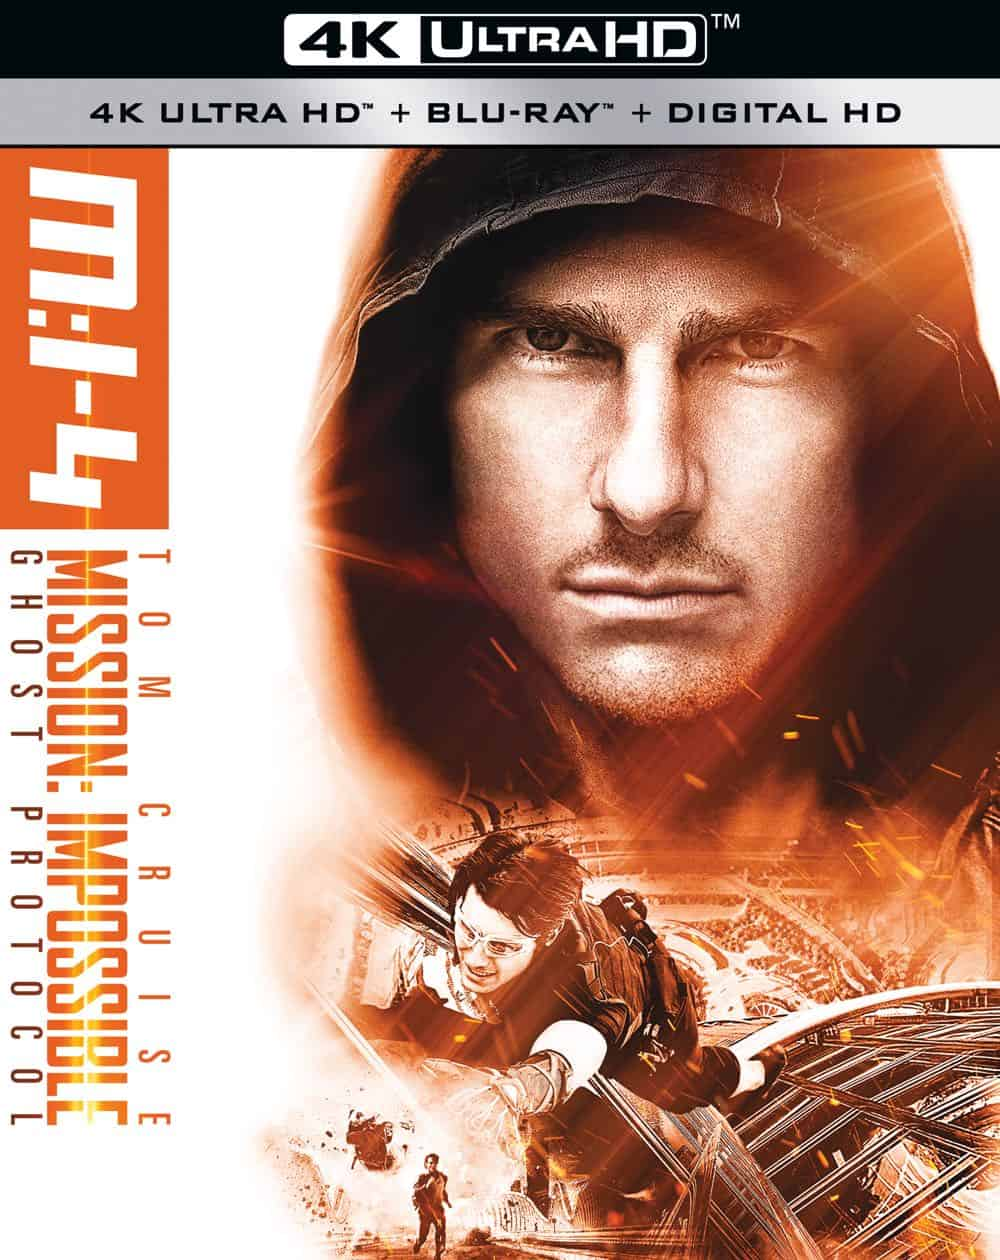 Mission Impossible 4 Ghost Protocol 4K